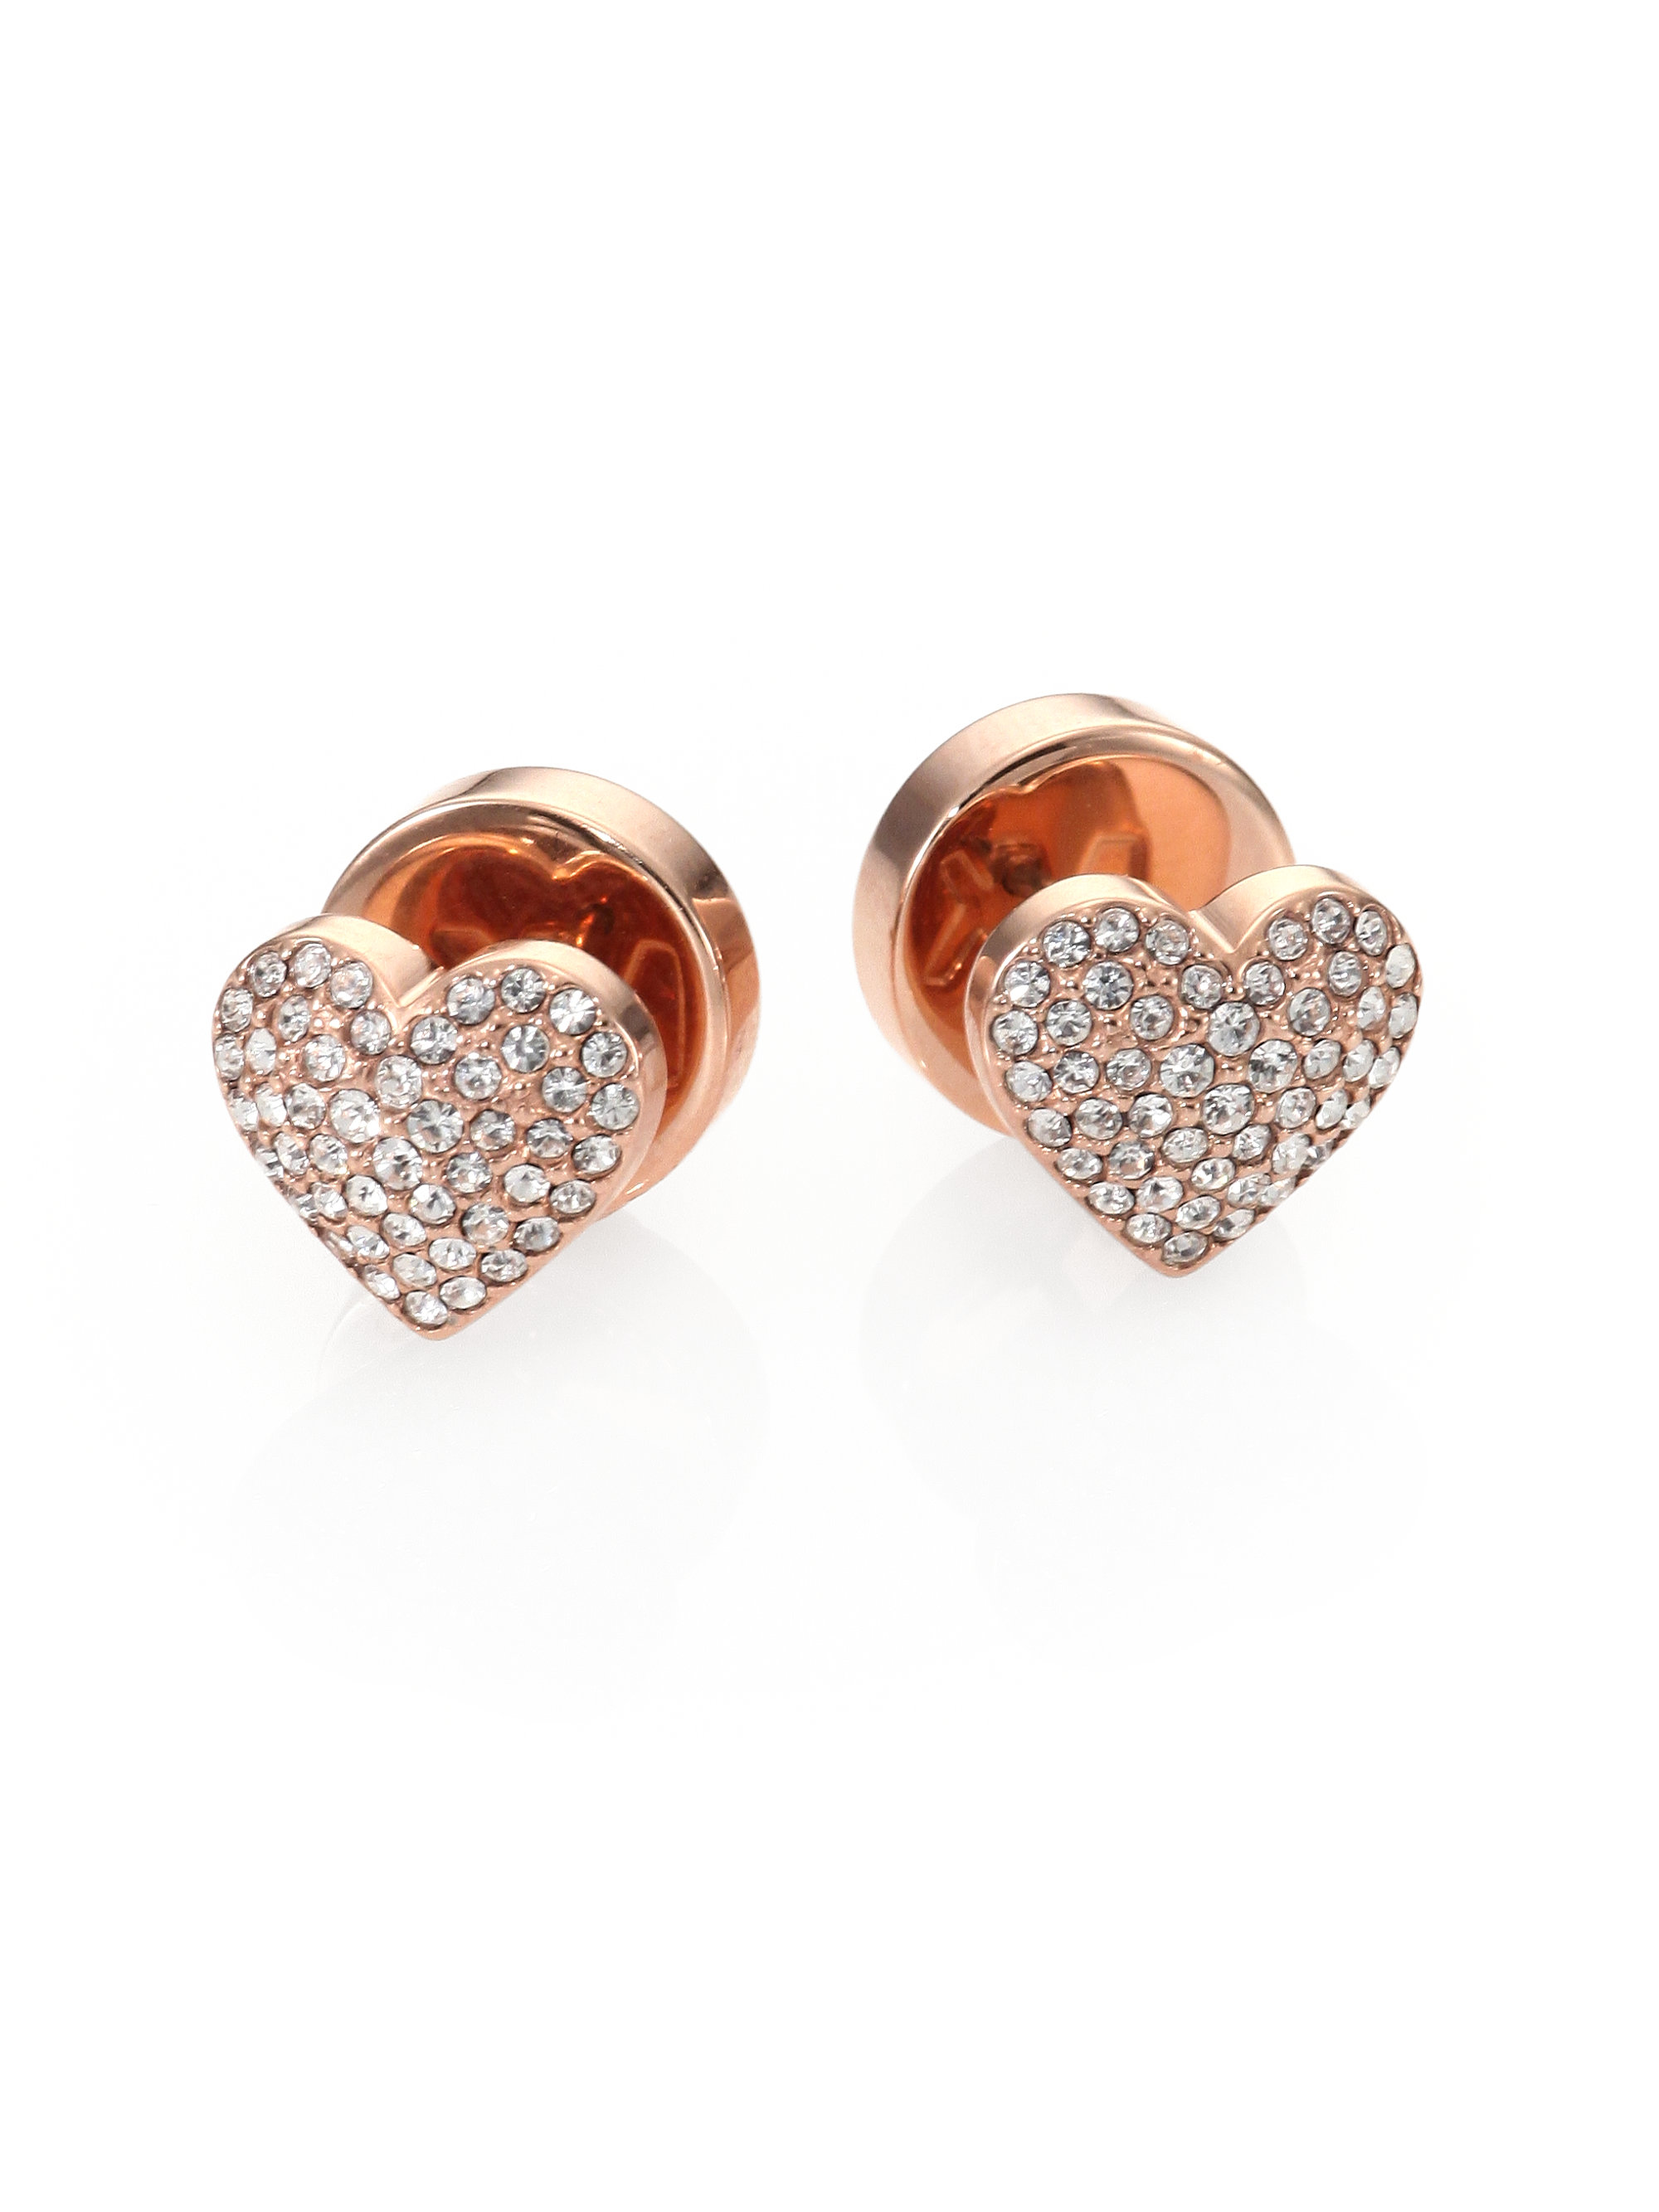 dba443d80bce Lyst - Michael Kors Pav Eacute  Heart Stud Earrings in Metallic